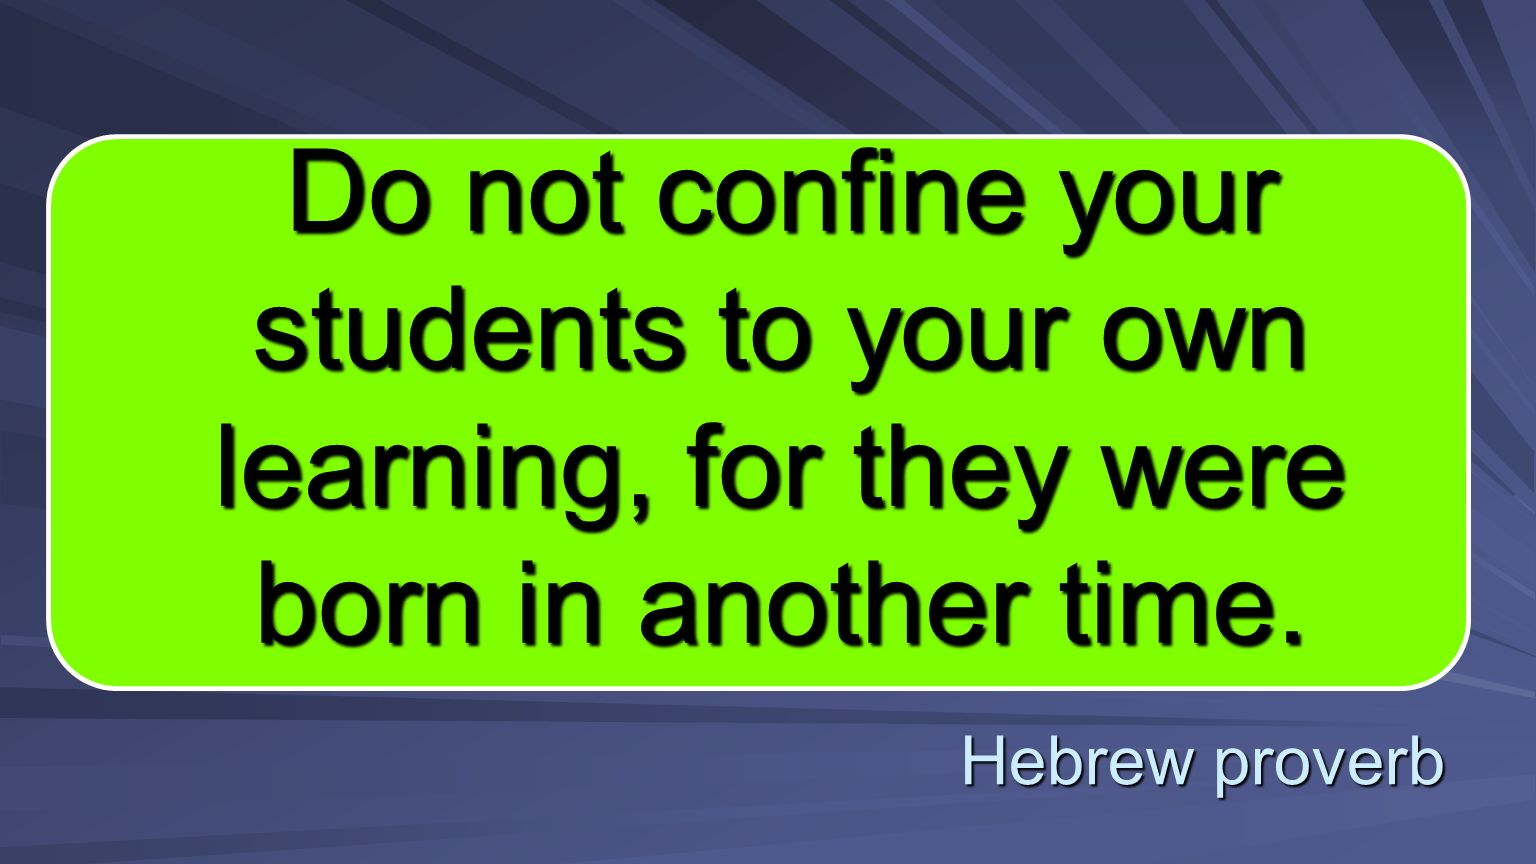 Hebrew proverb Do not confine your students to your own learning, for they were born in another time.